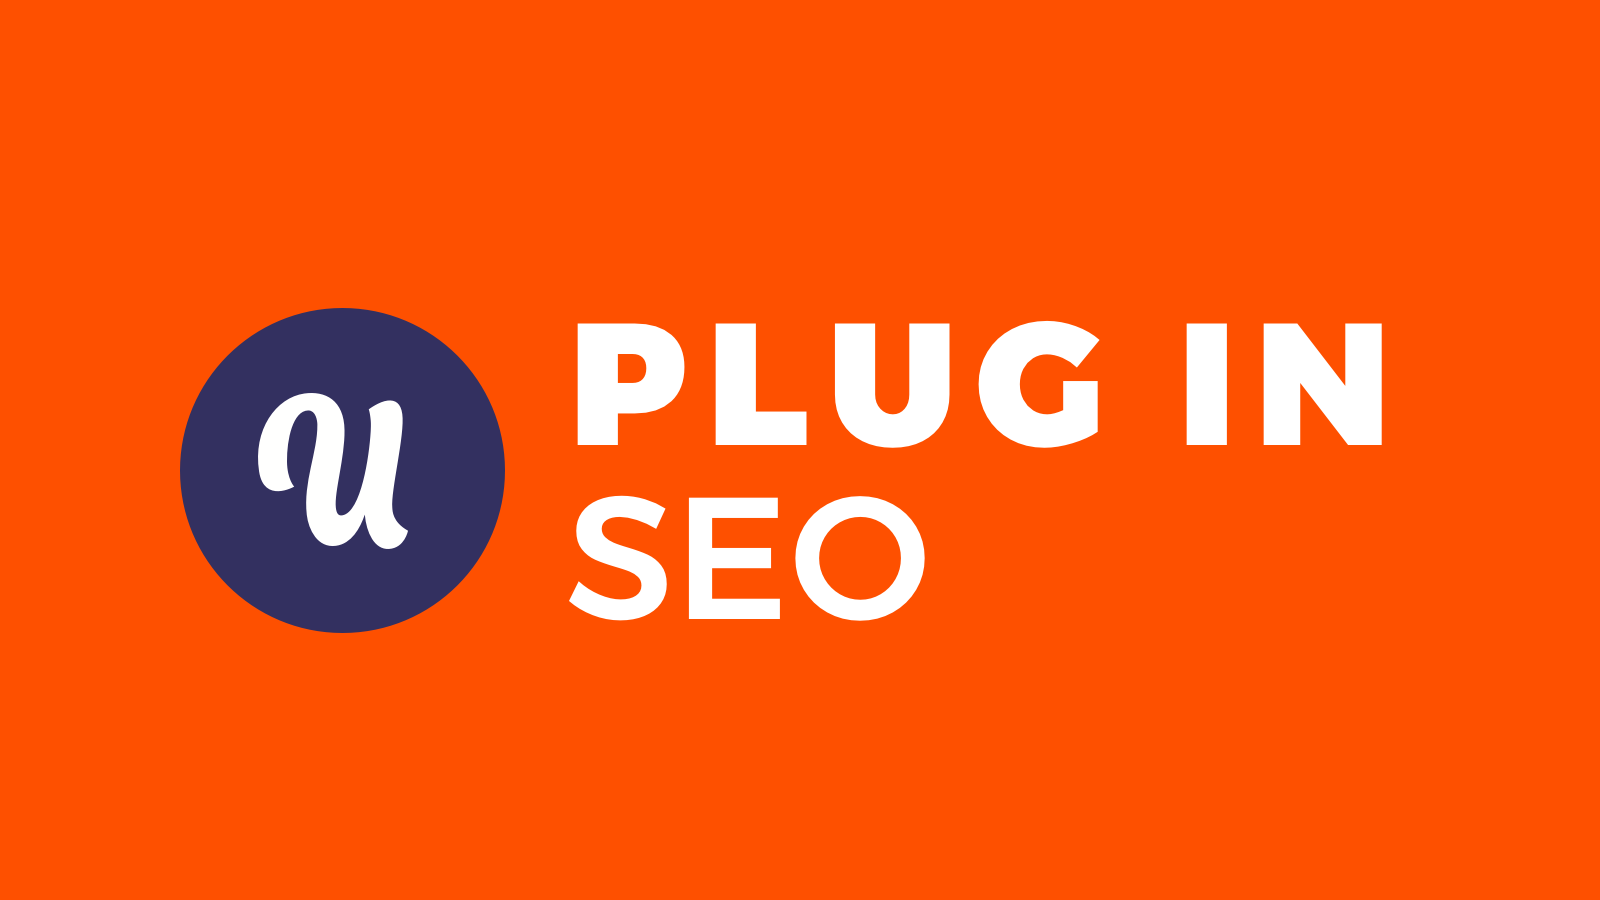 Plugin SEO Shopify App for Your E-commerce Brand